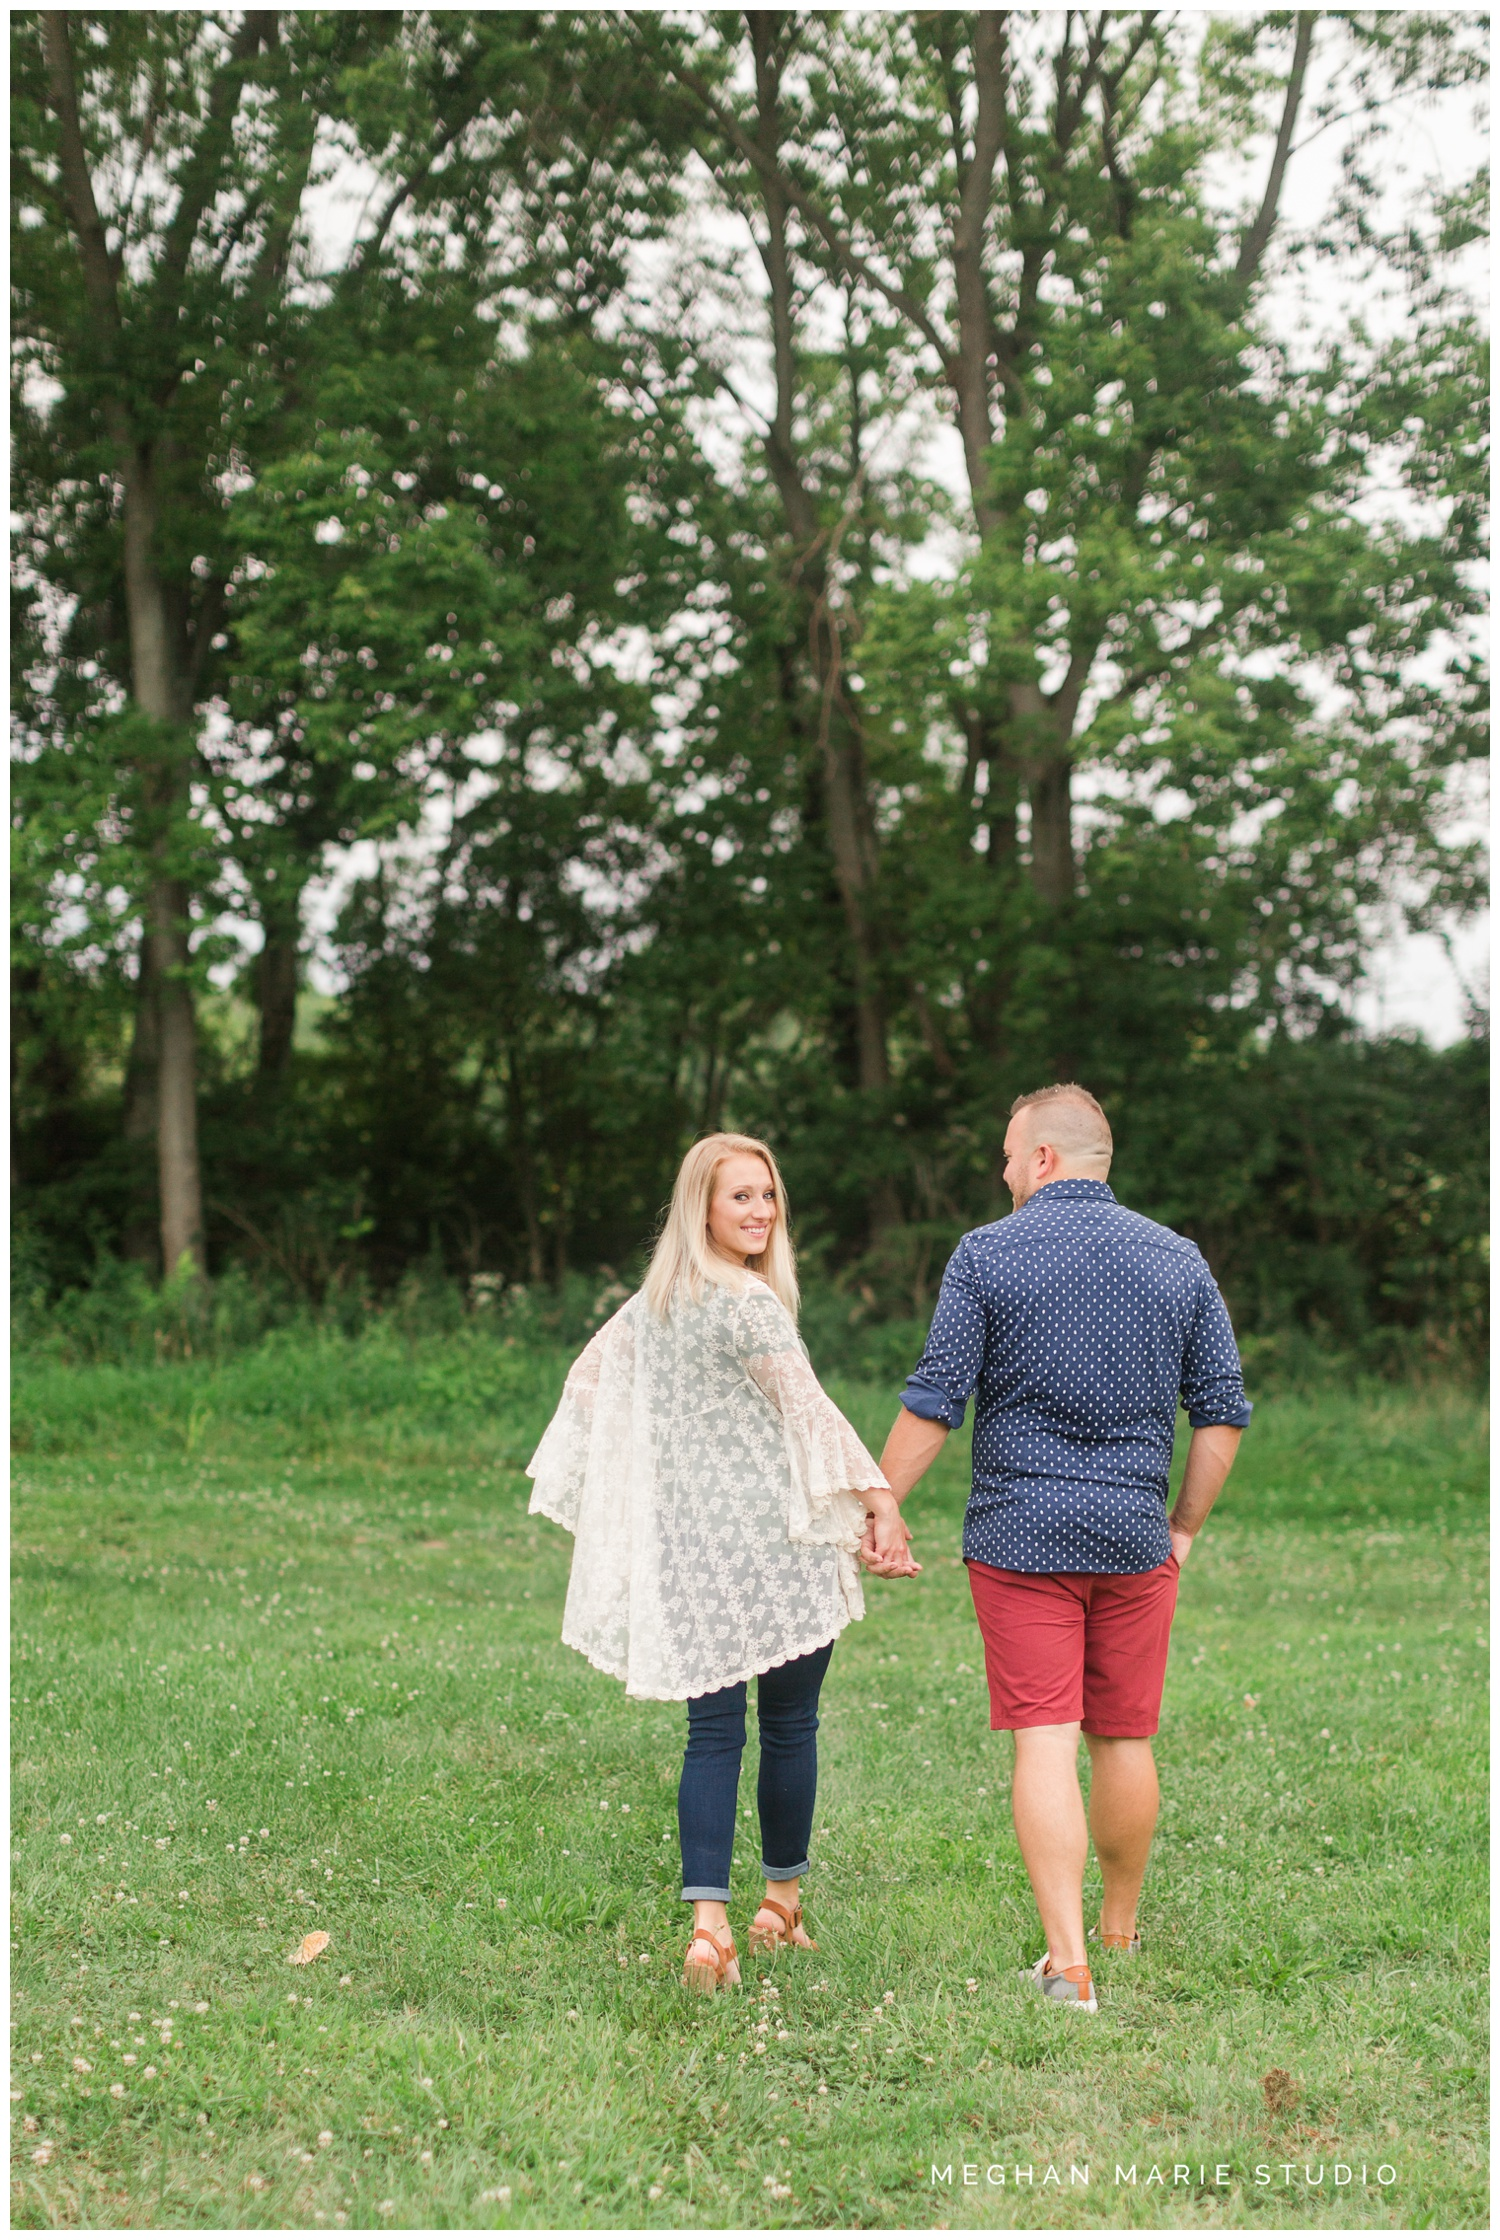 meghan marie studio ohio dayton troy photographer wedding photography engagement alex kaila family honeycreek preserve champagne downtown courthouse urban rural earth toned nature woods barn country city stone fountain elegant_0473.jpg